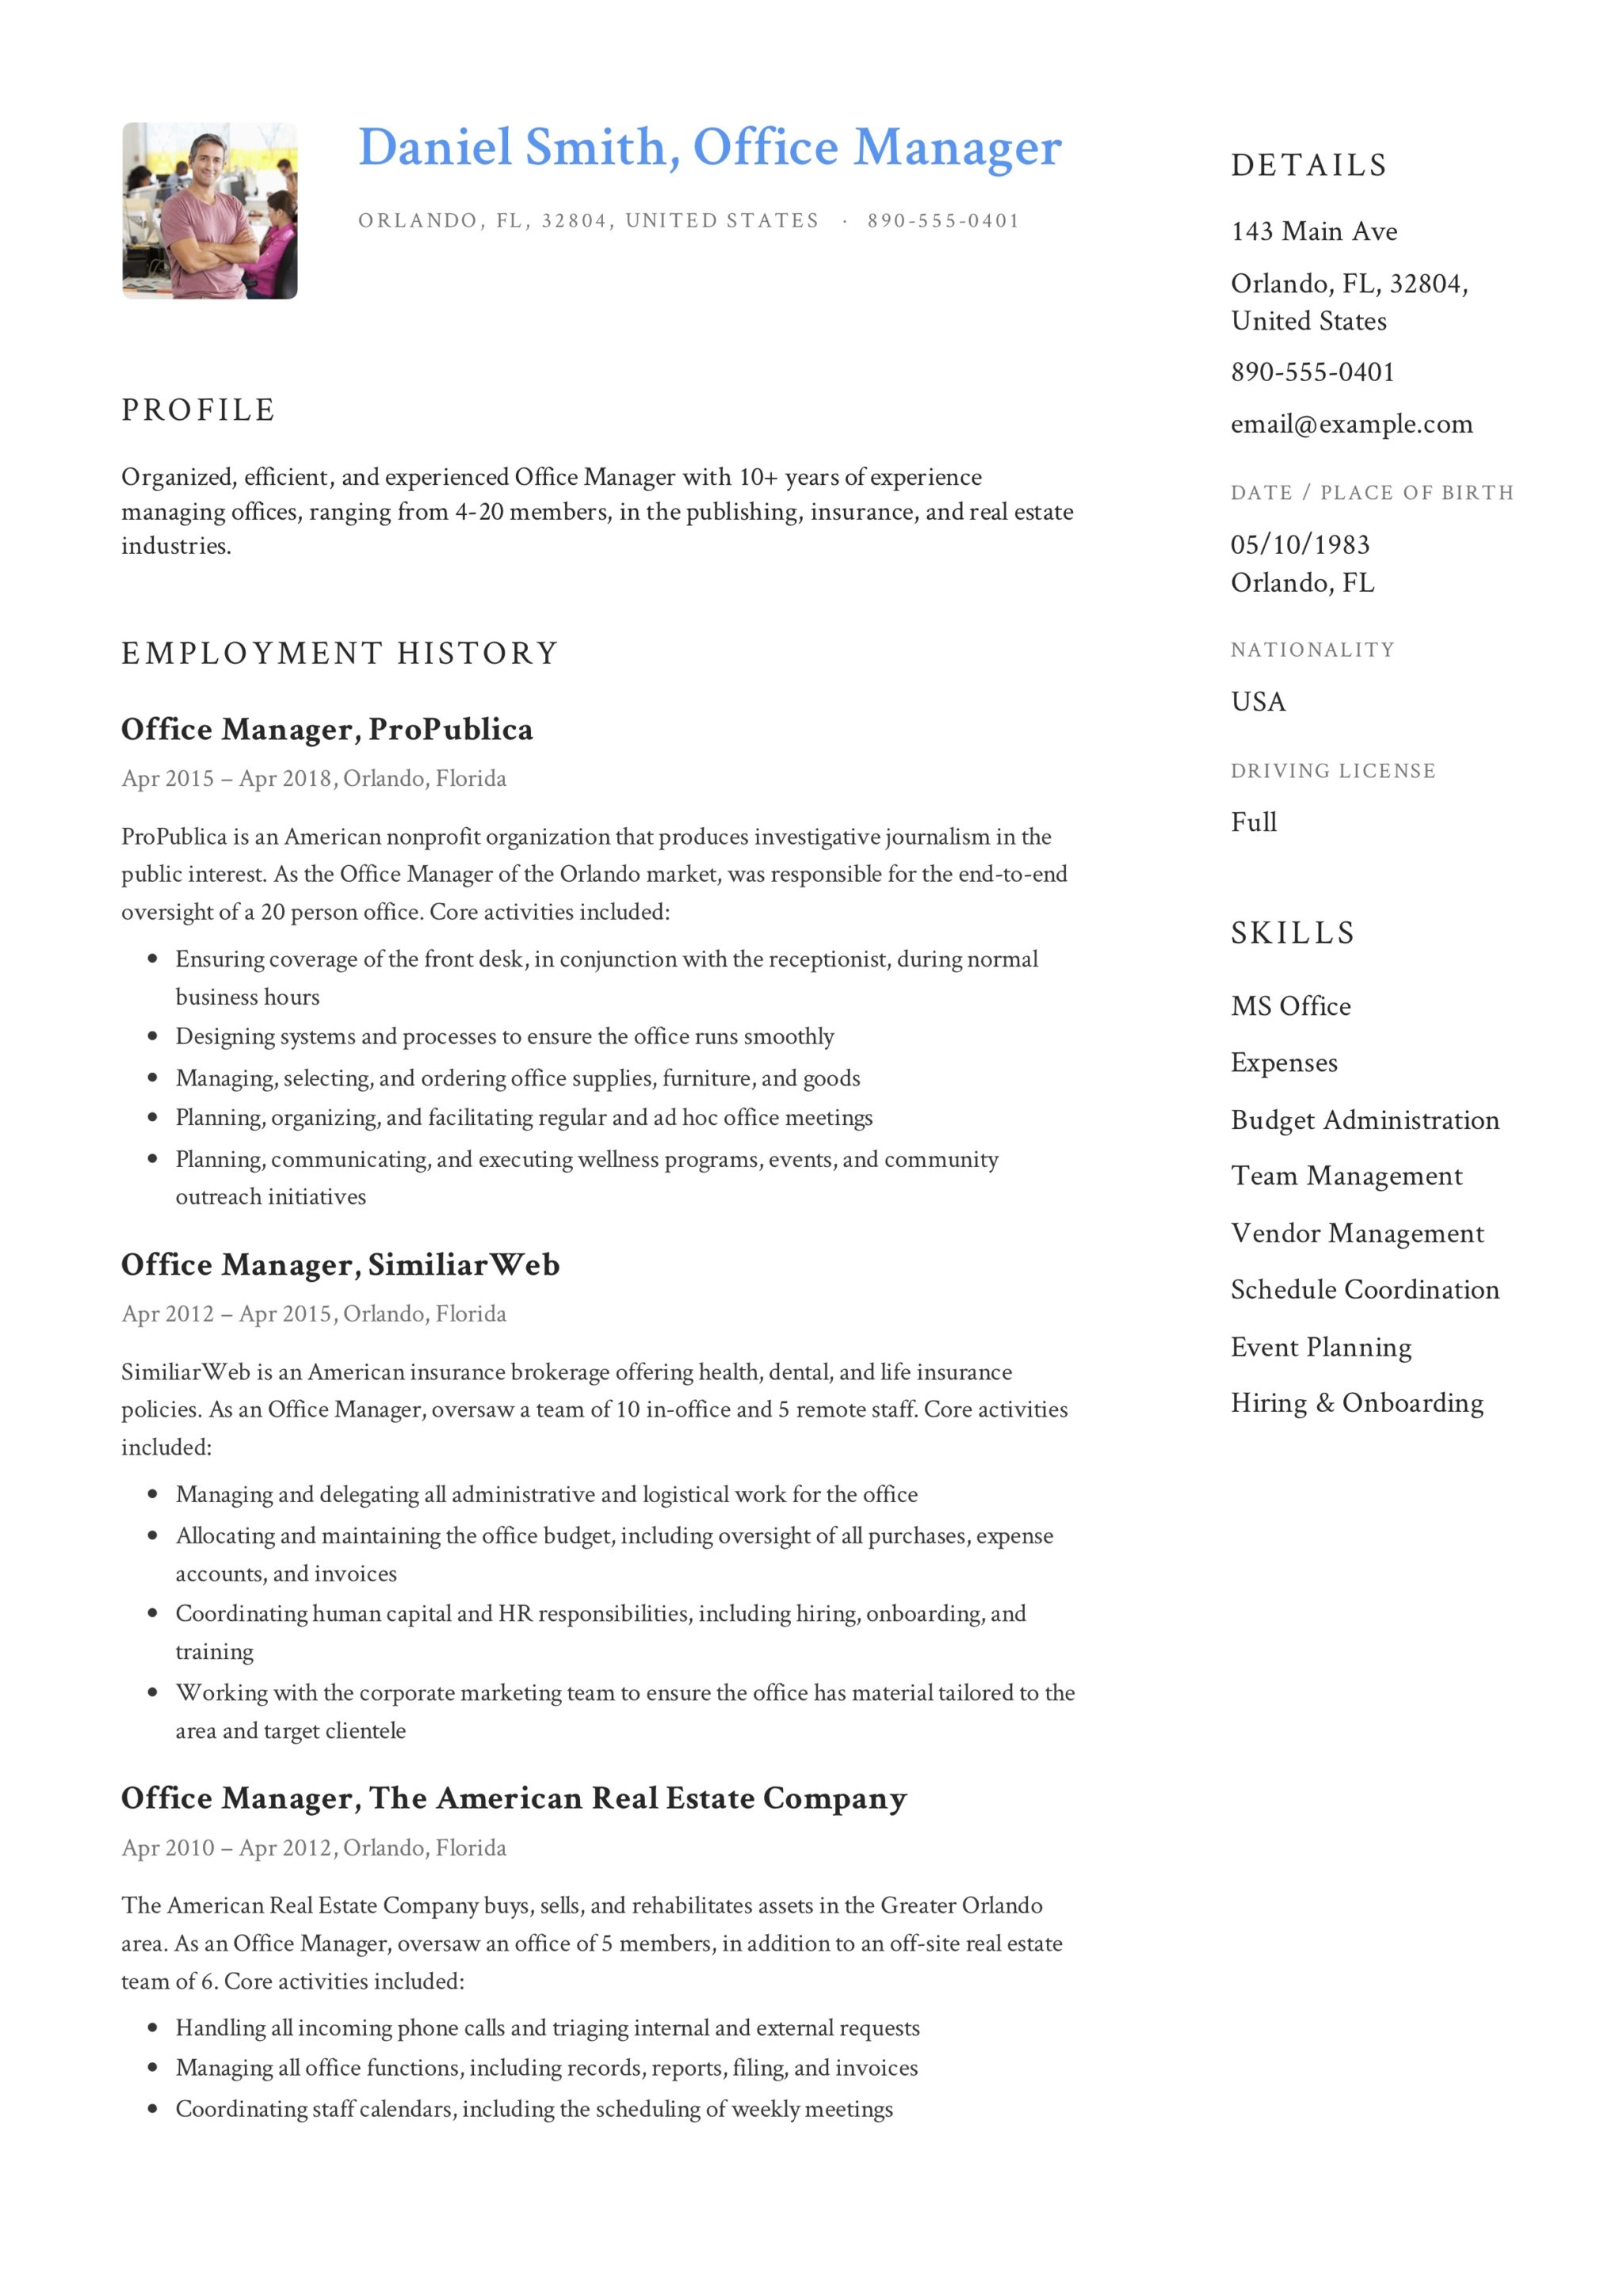 Daniel Smith Resume Office Manager. Office Manager Resume Sample